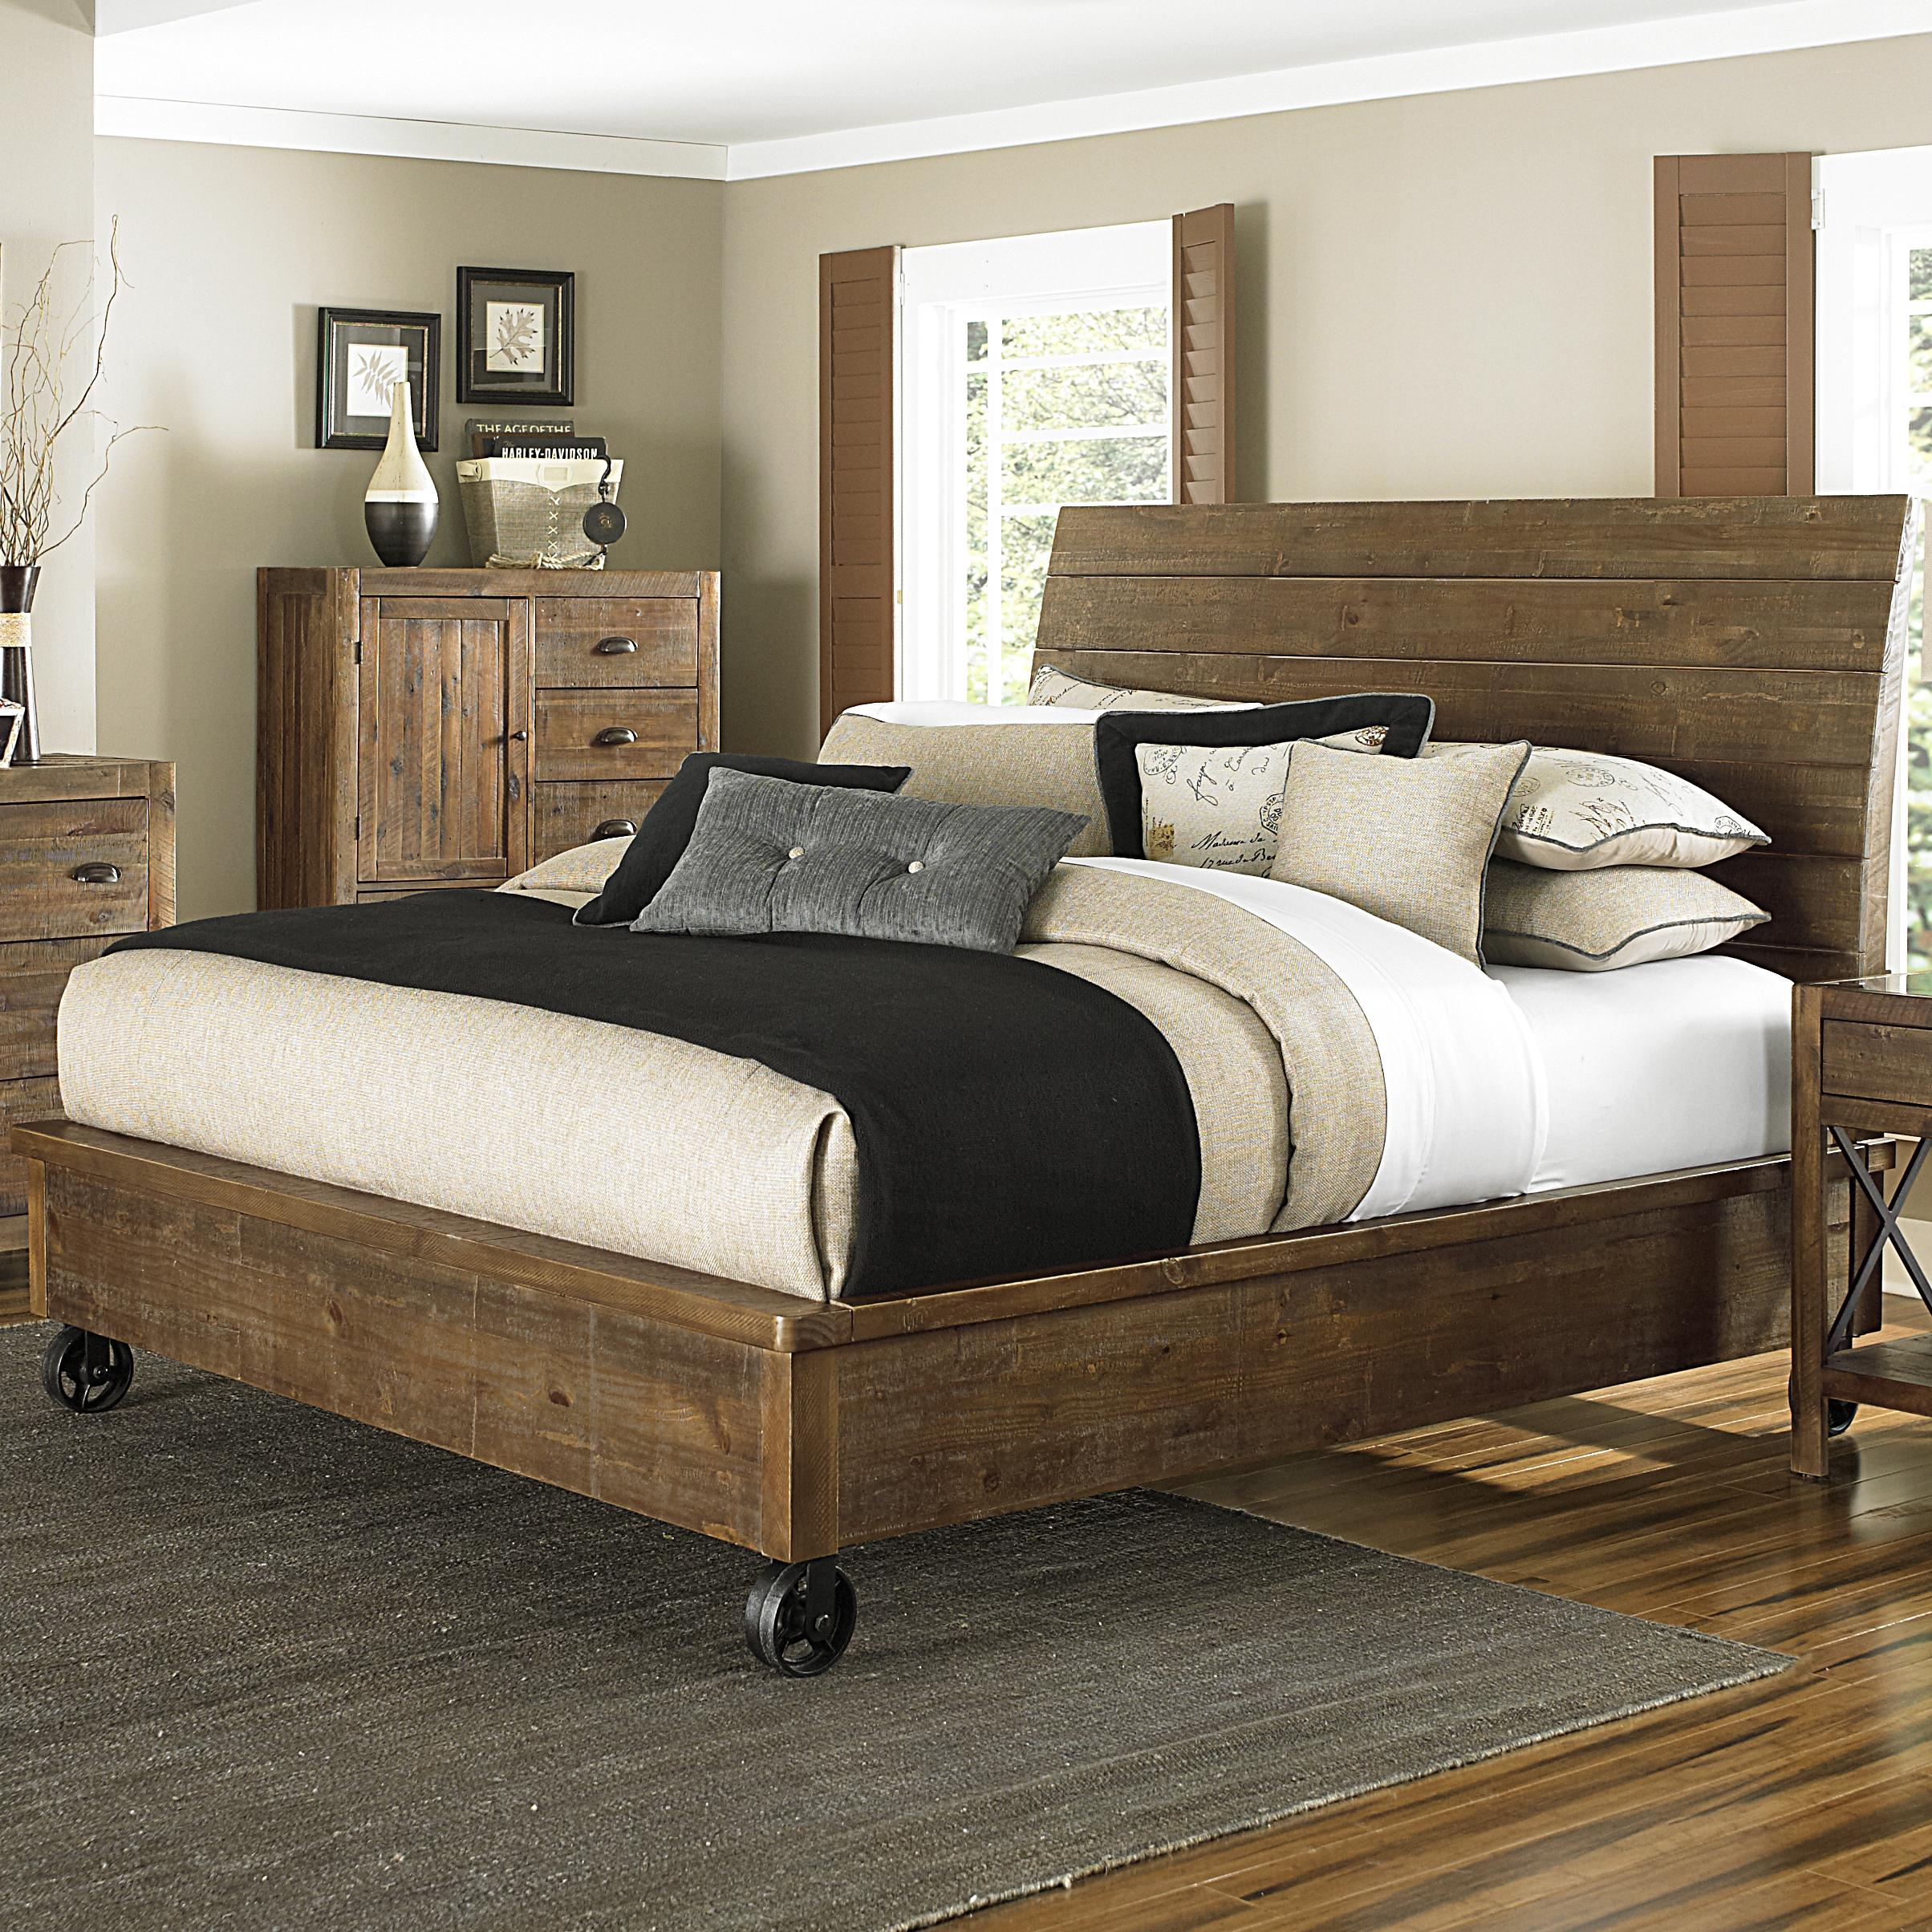 Furniture Dazzling Cheap Headboard Design Ideas With Brown ... on Cheap Bed Ideas  id=13549